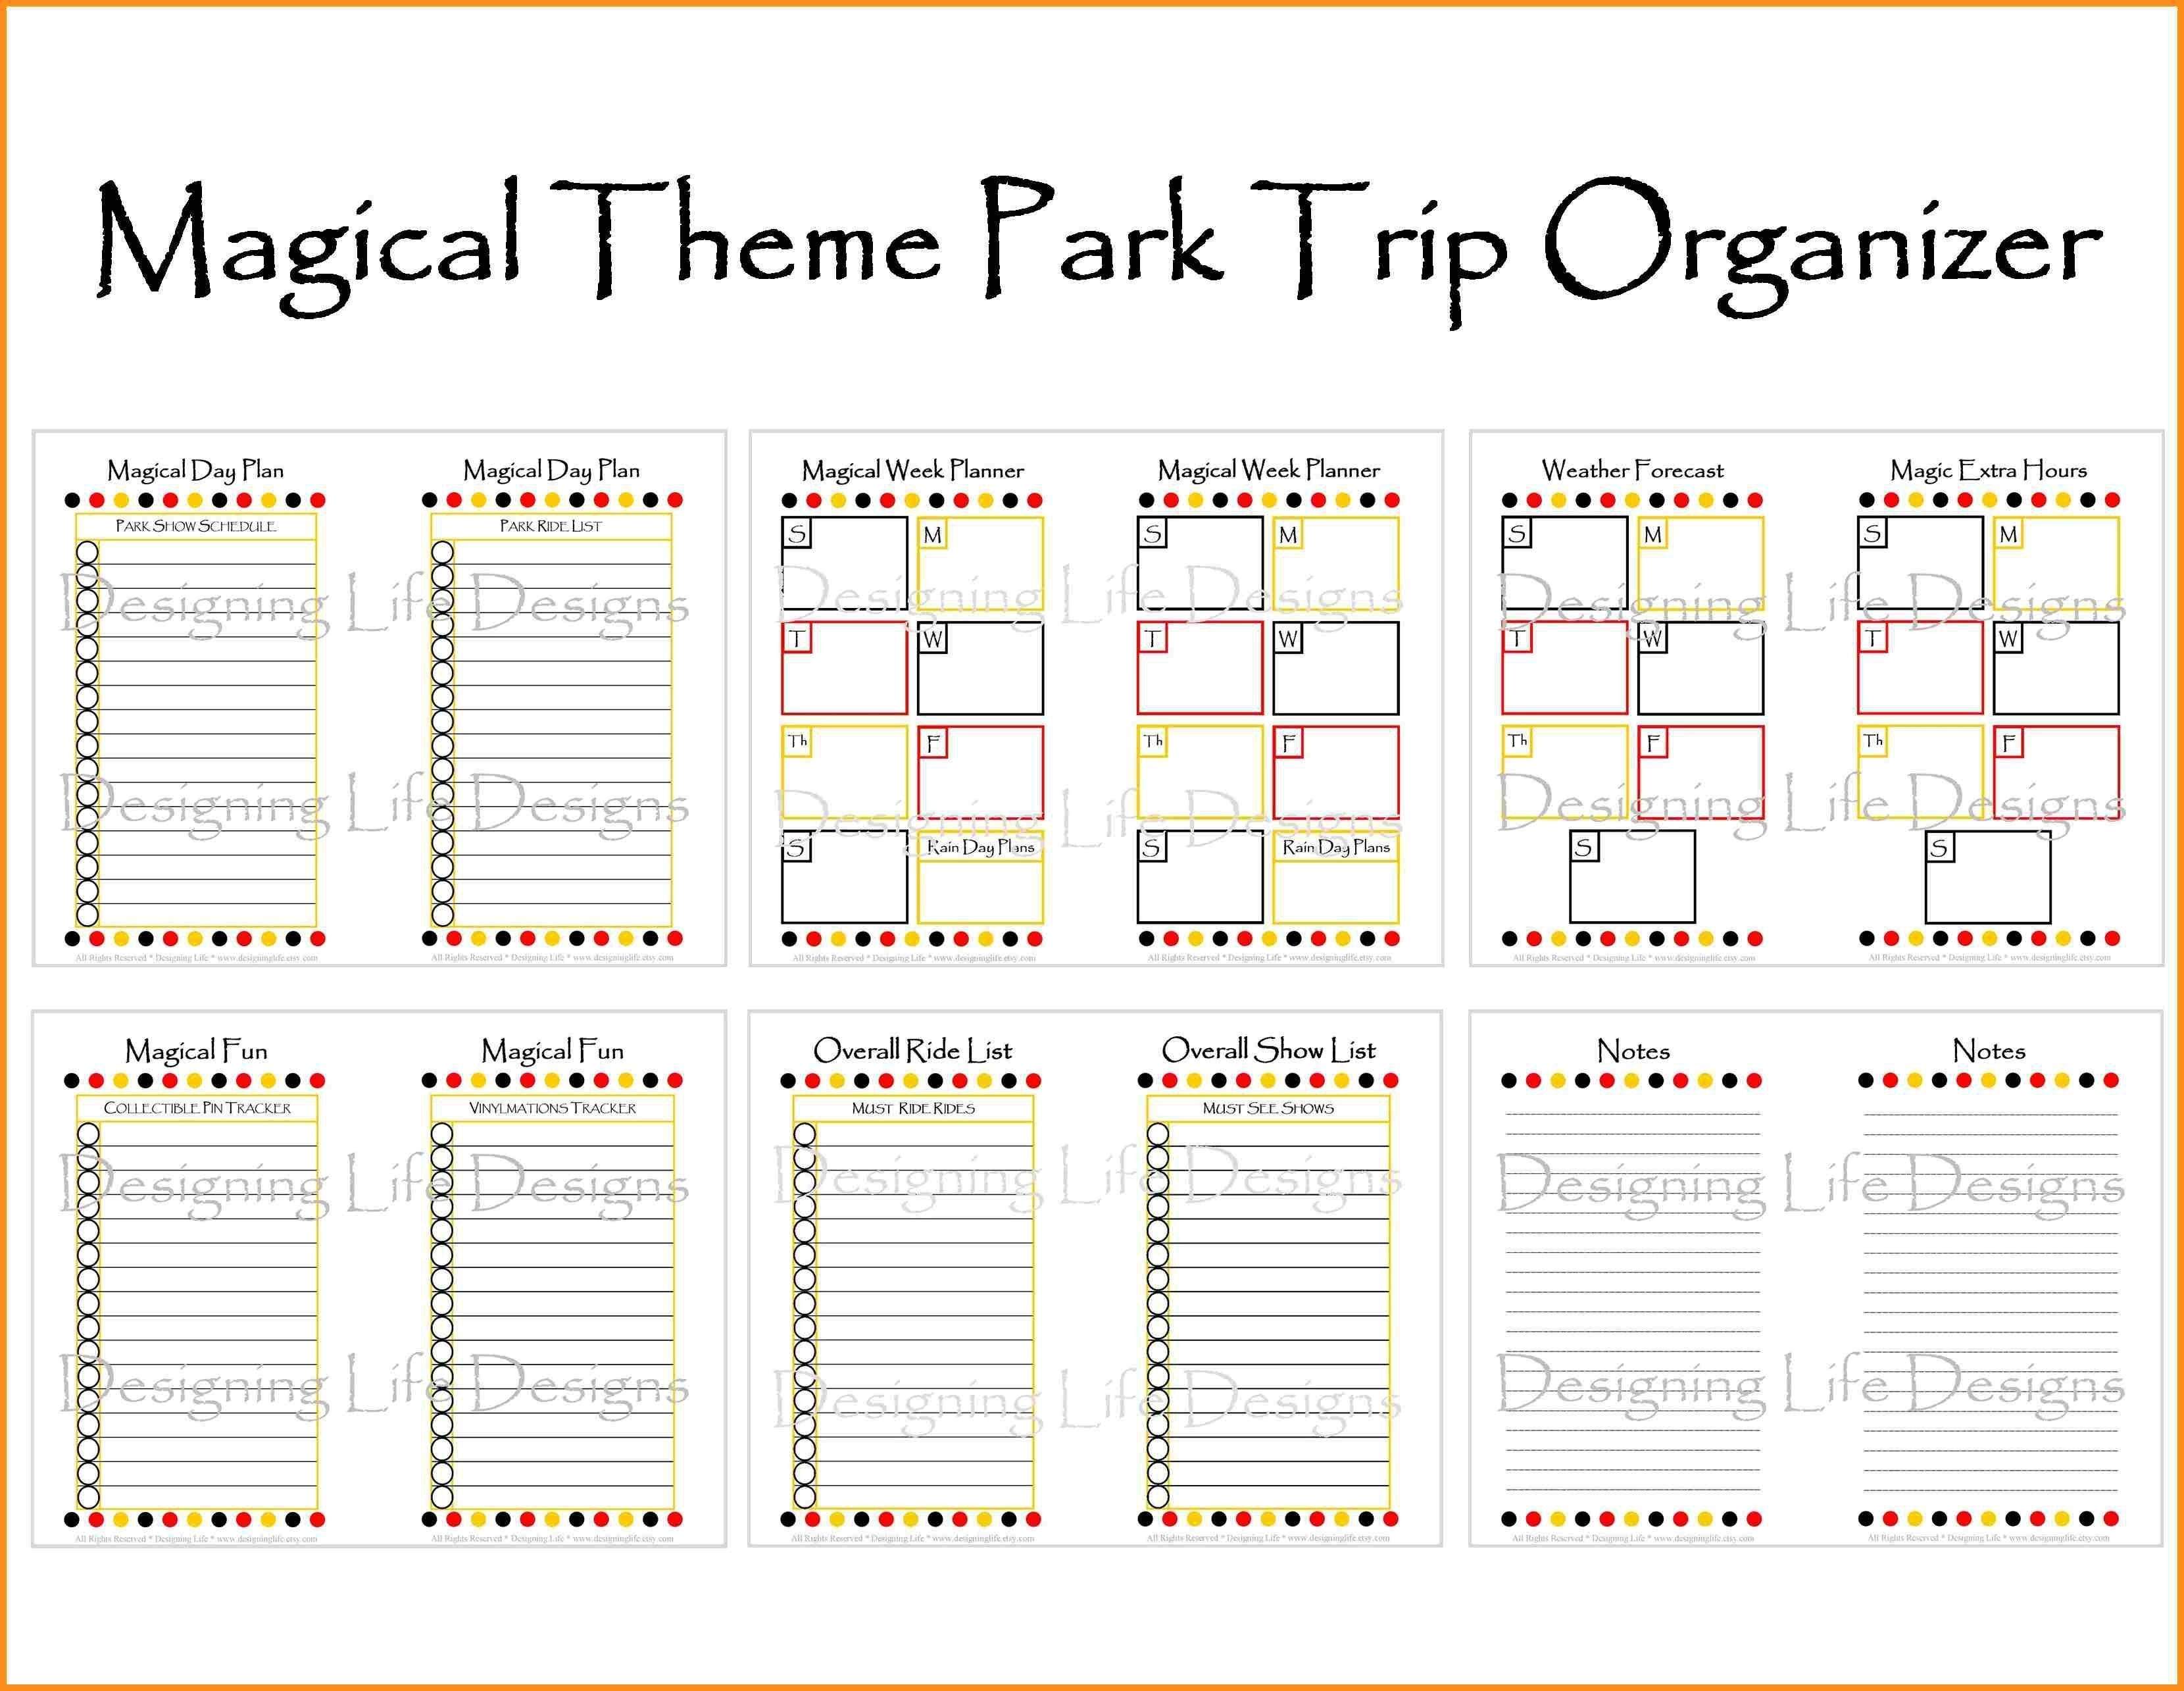 Image Result For Disney World Itinerary Template | Disney-Disney World Itineray Template